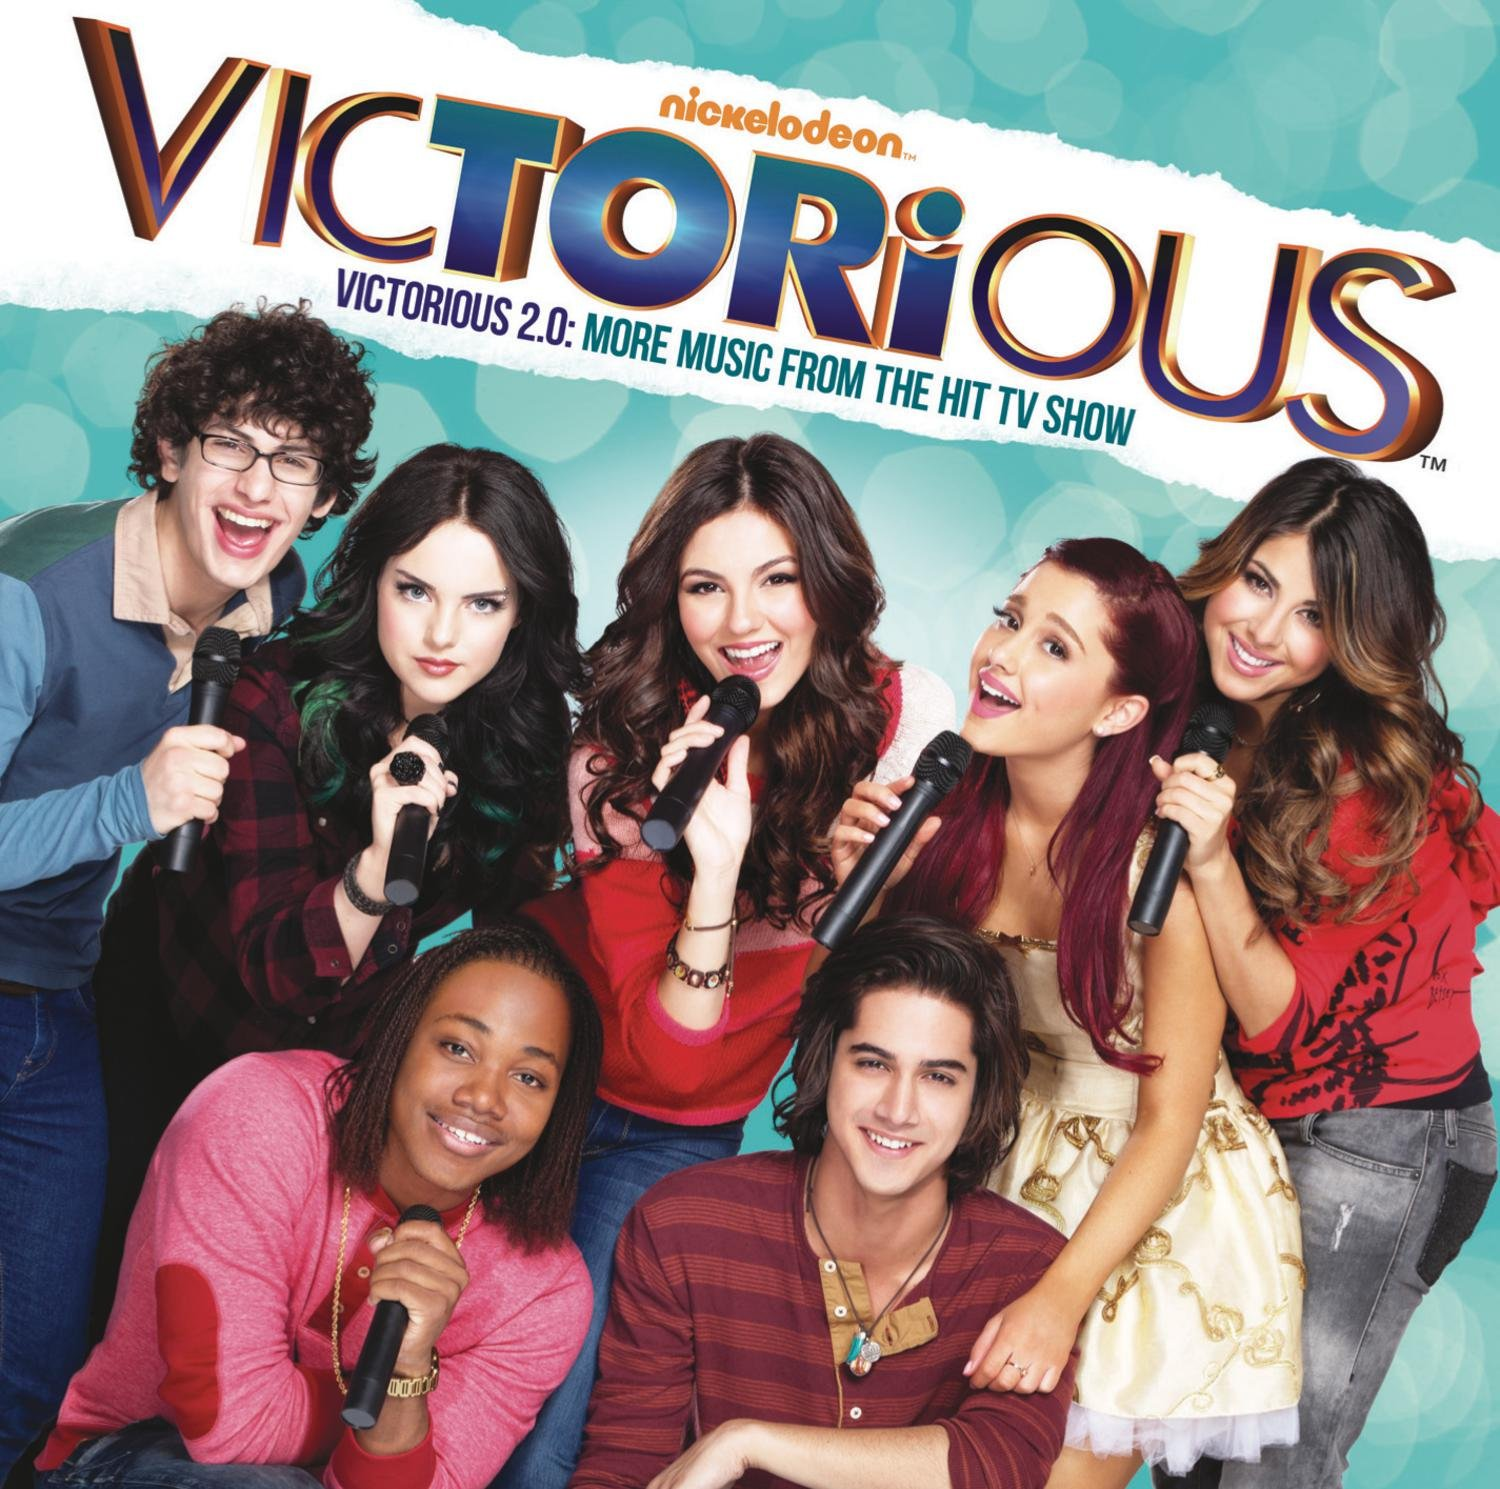 victorious 2.0